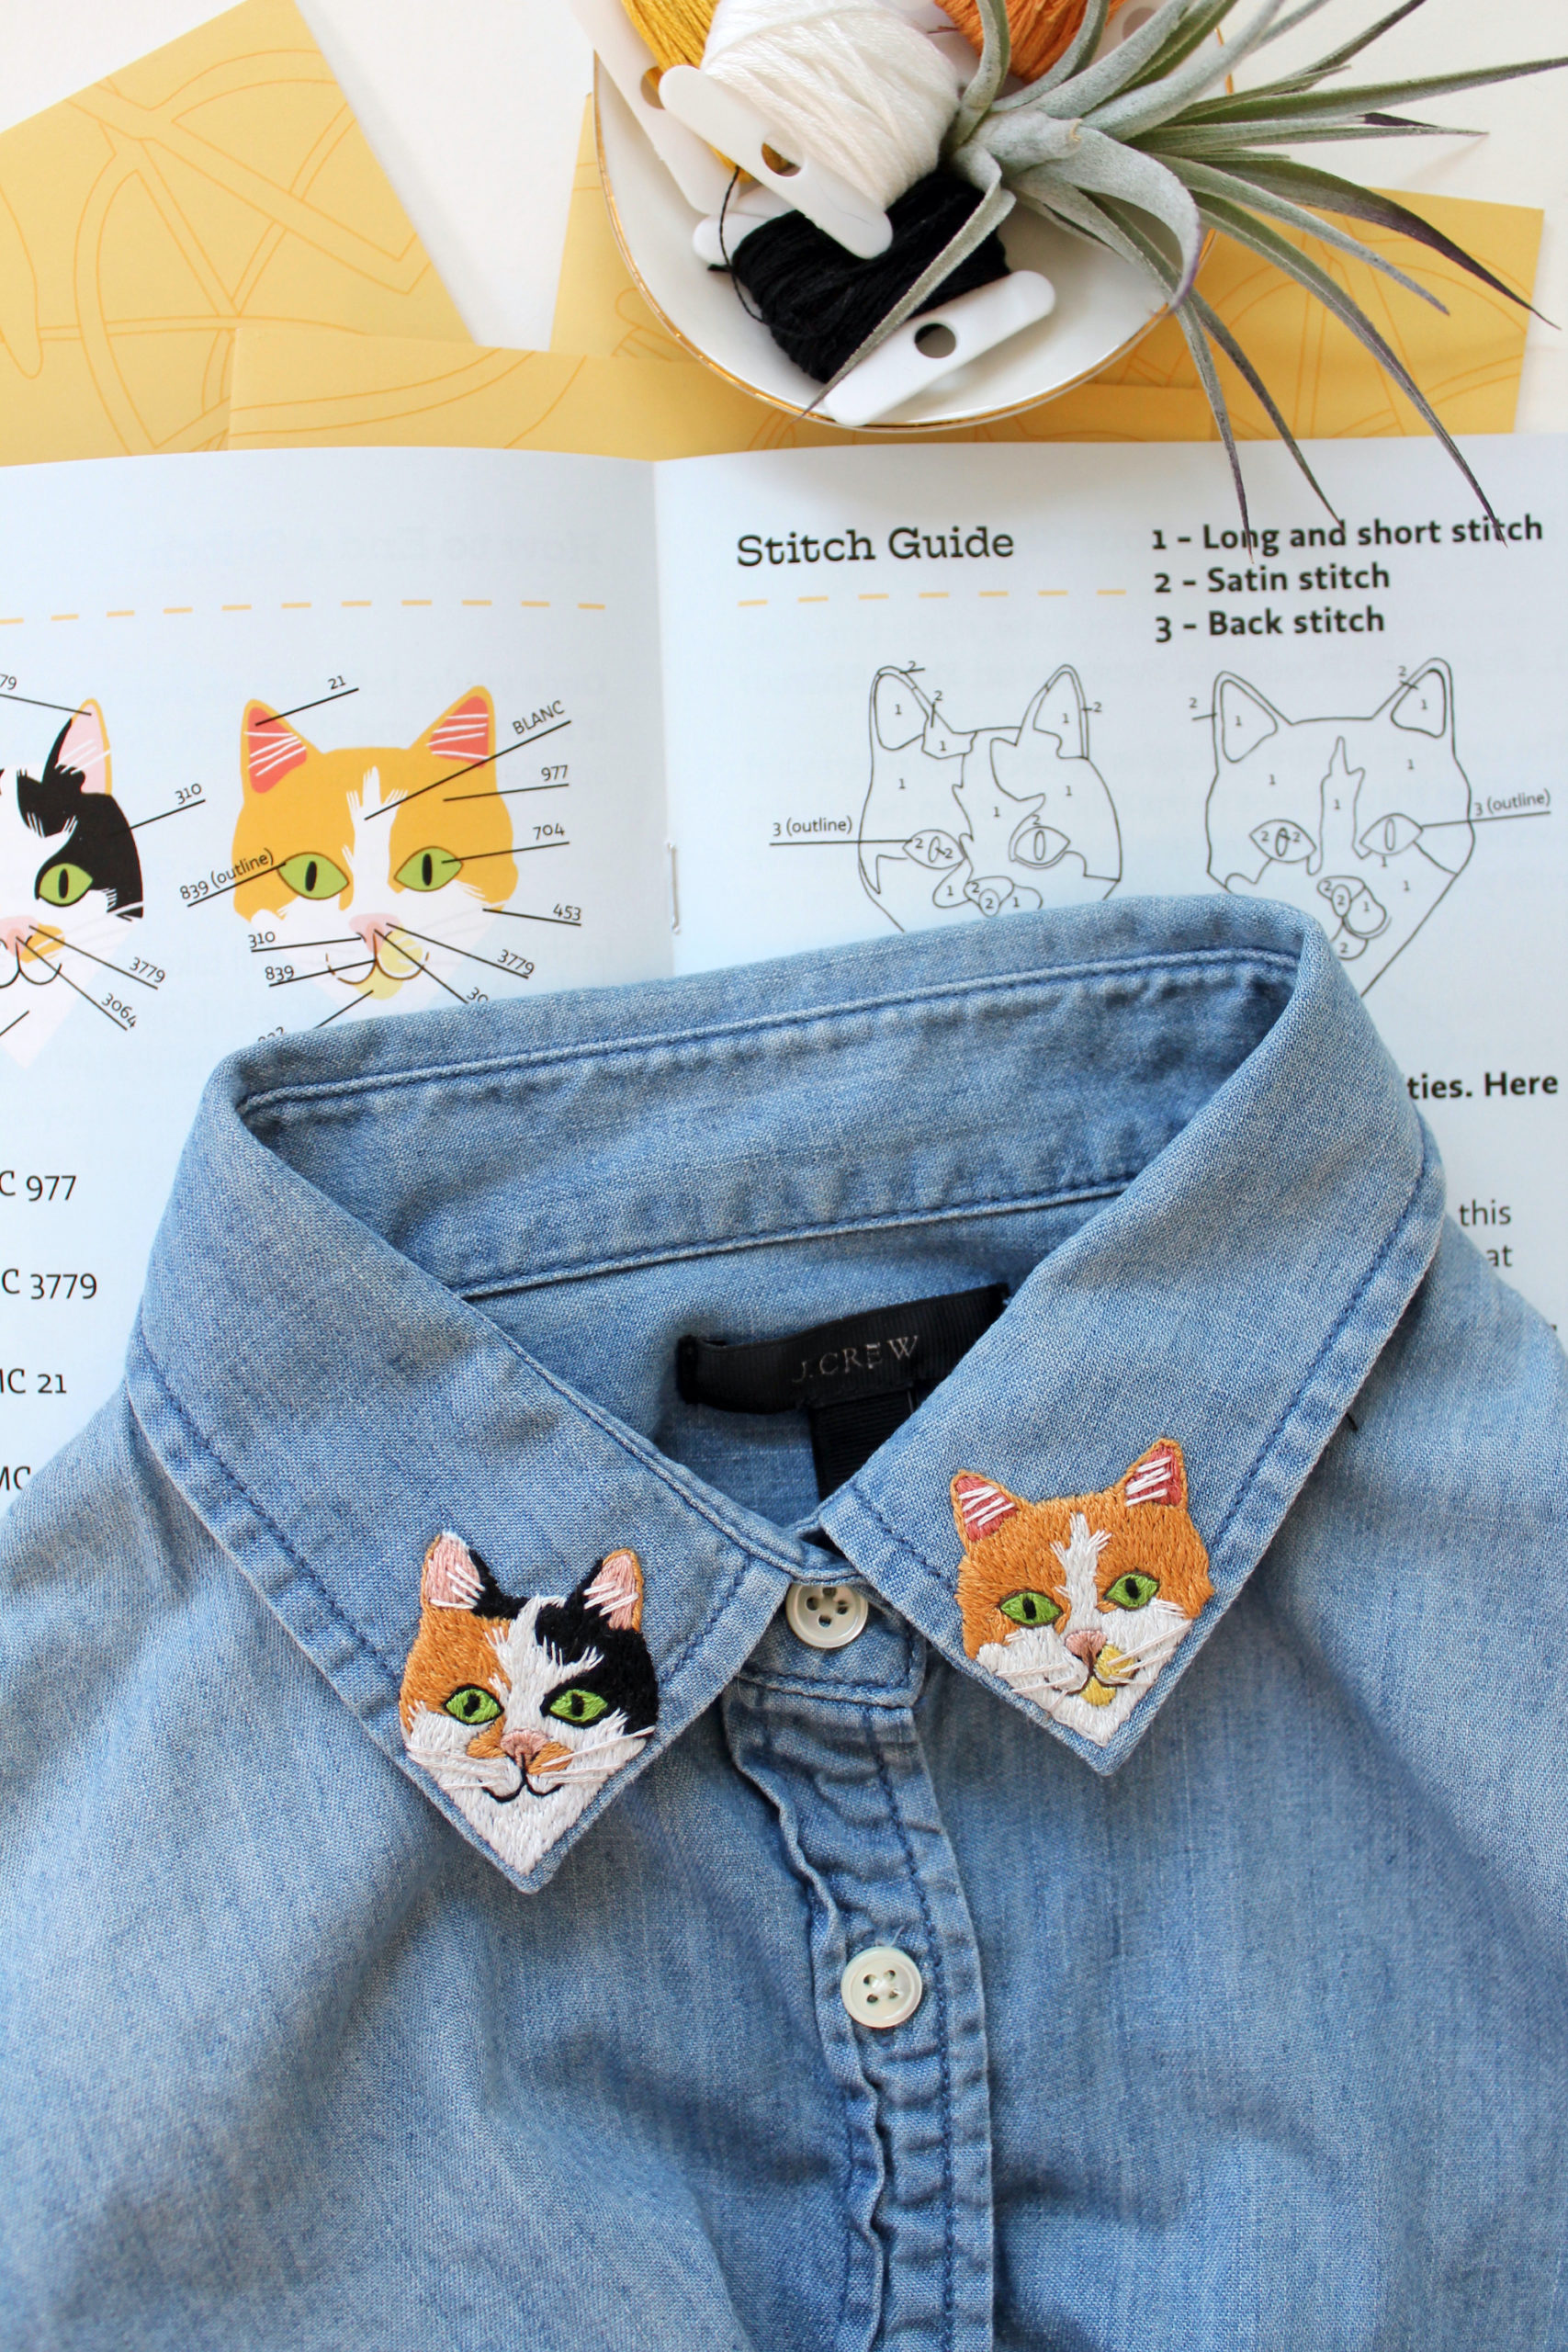 These Embroidery Kits Have Everything You Need to Stitch Two Cats on a Shirt